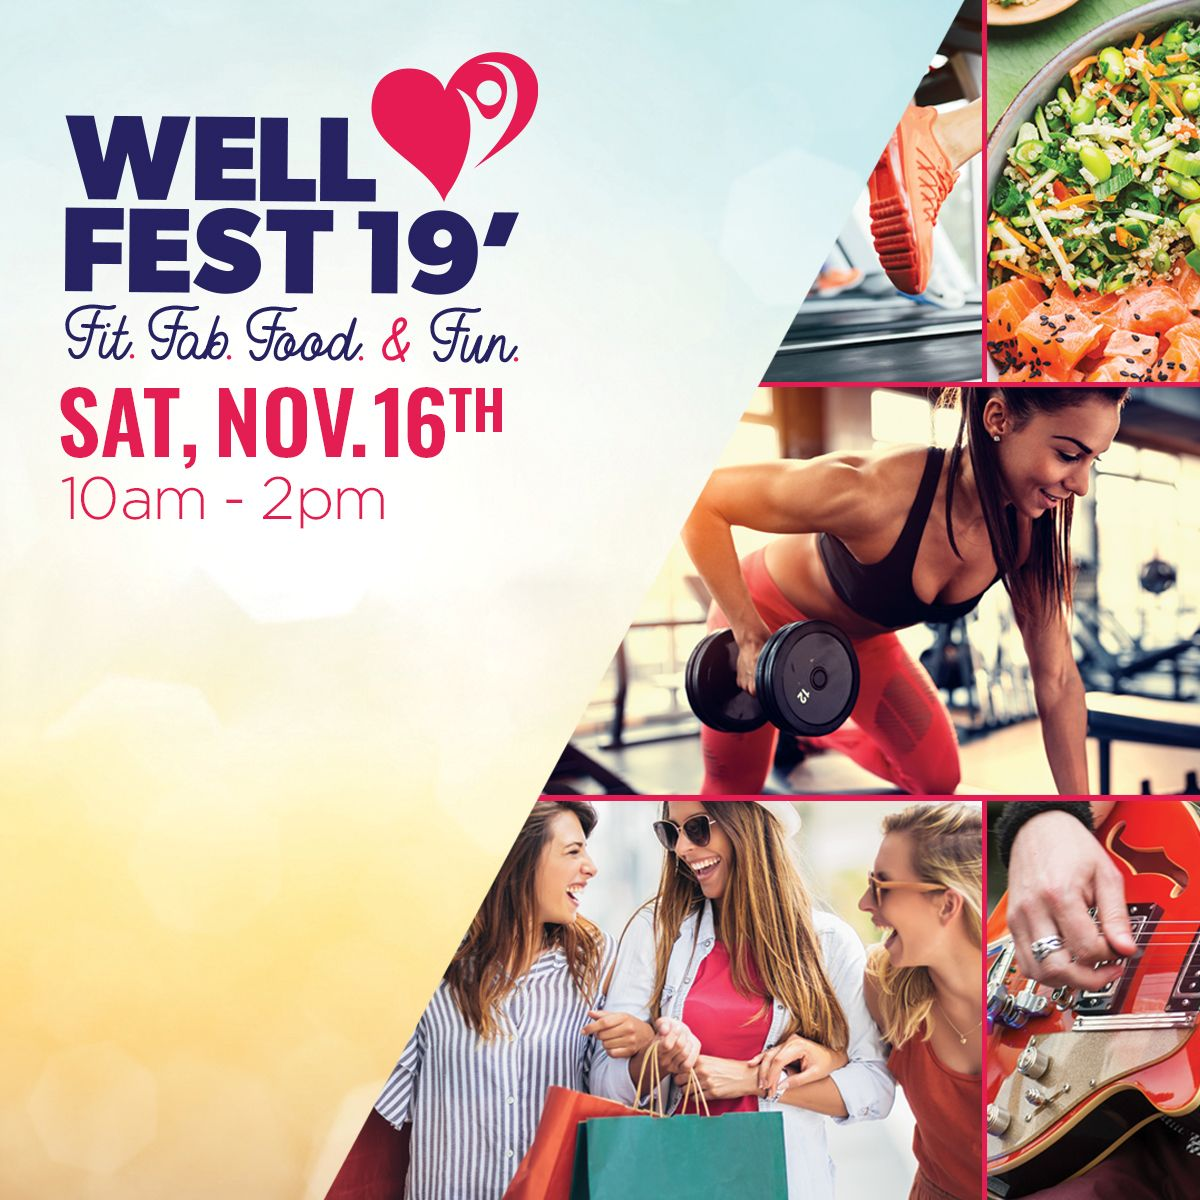 WellFest '19 at the Shops at University Park